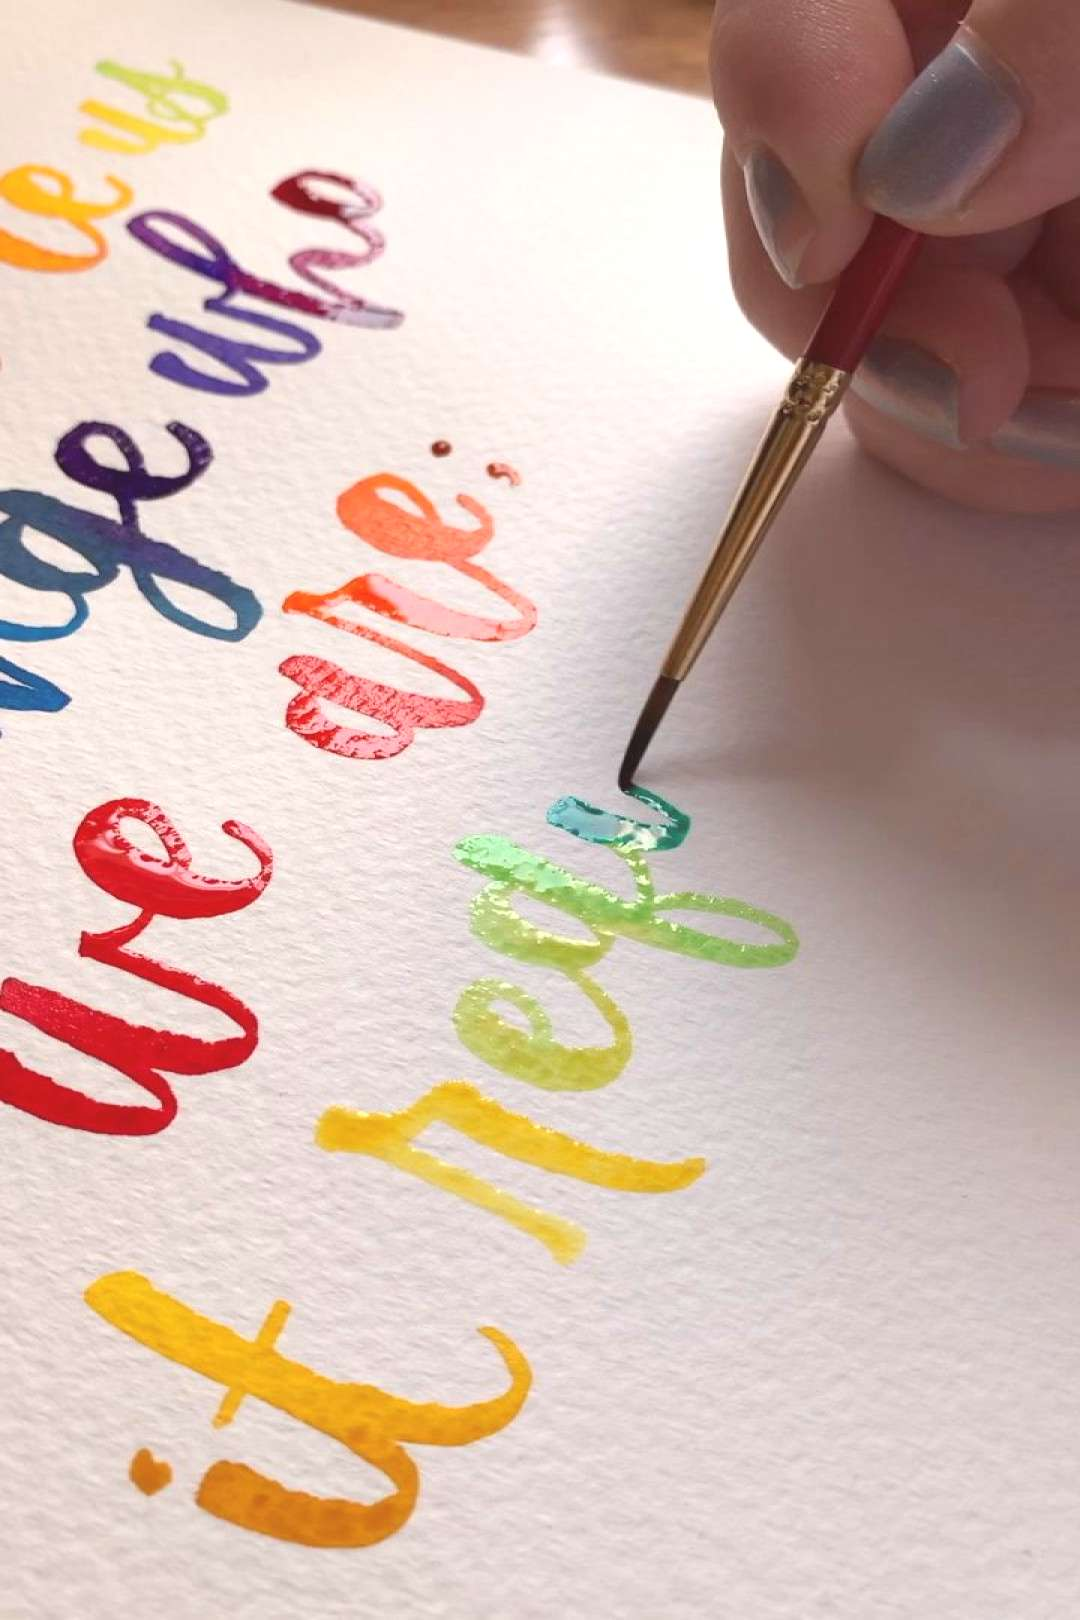 Real time watercolor lettering ? I'm always so mesmerized by real-time watercolor lettering! W